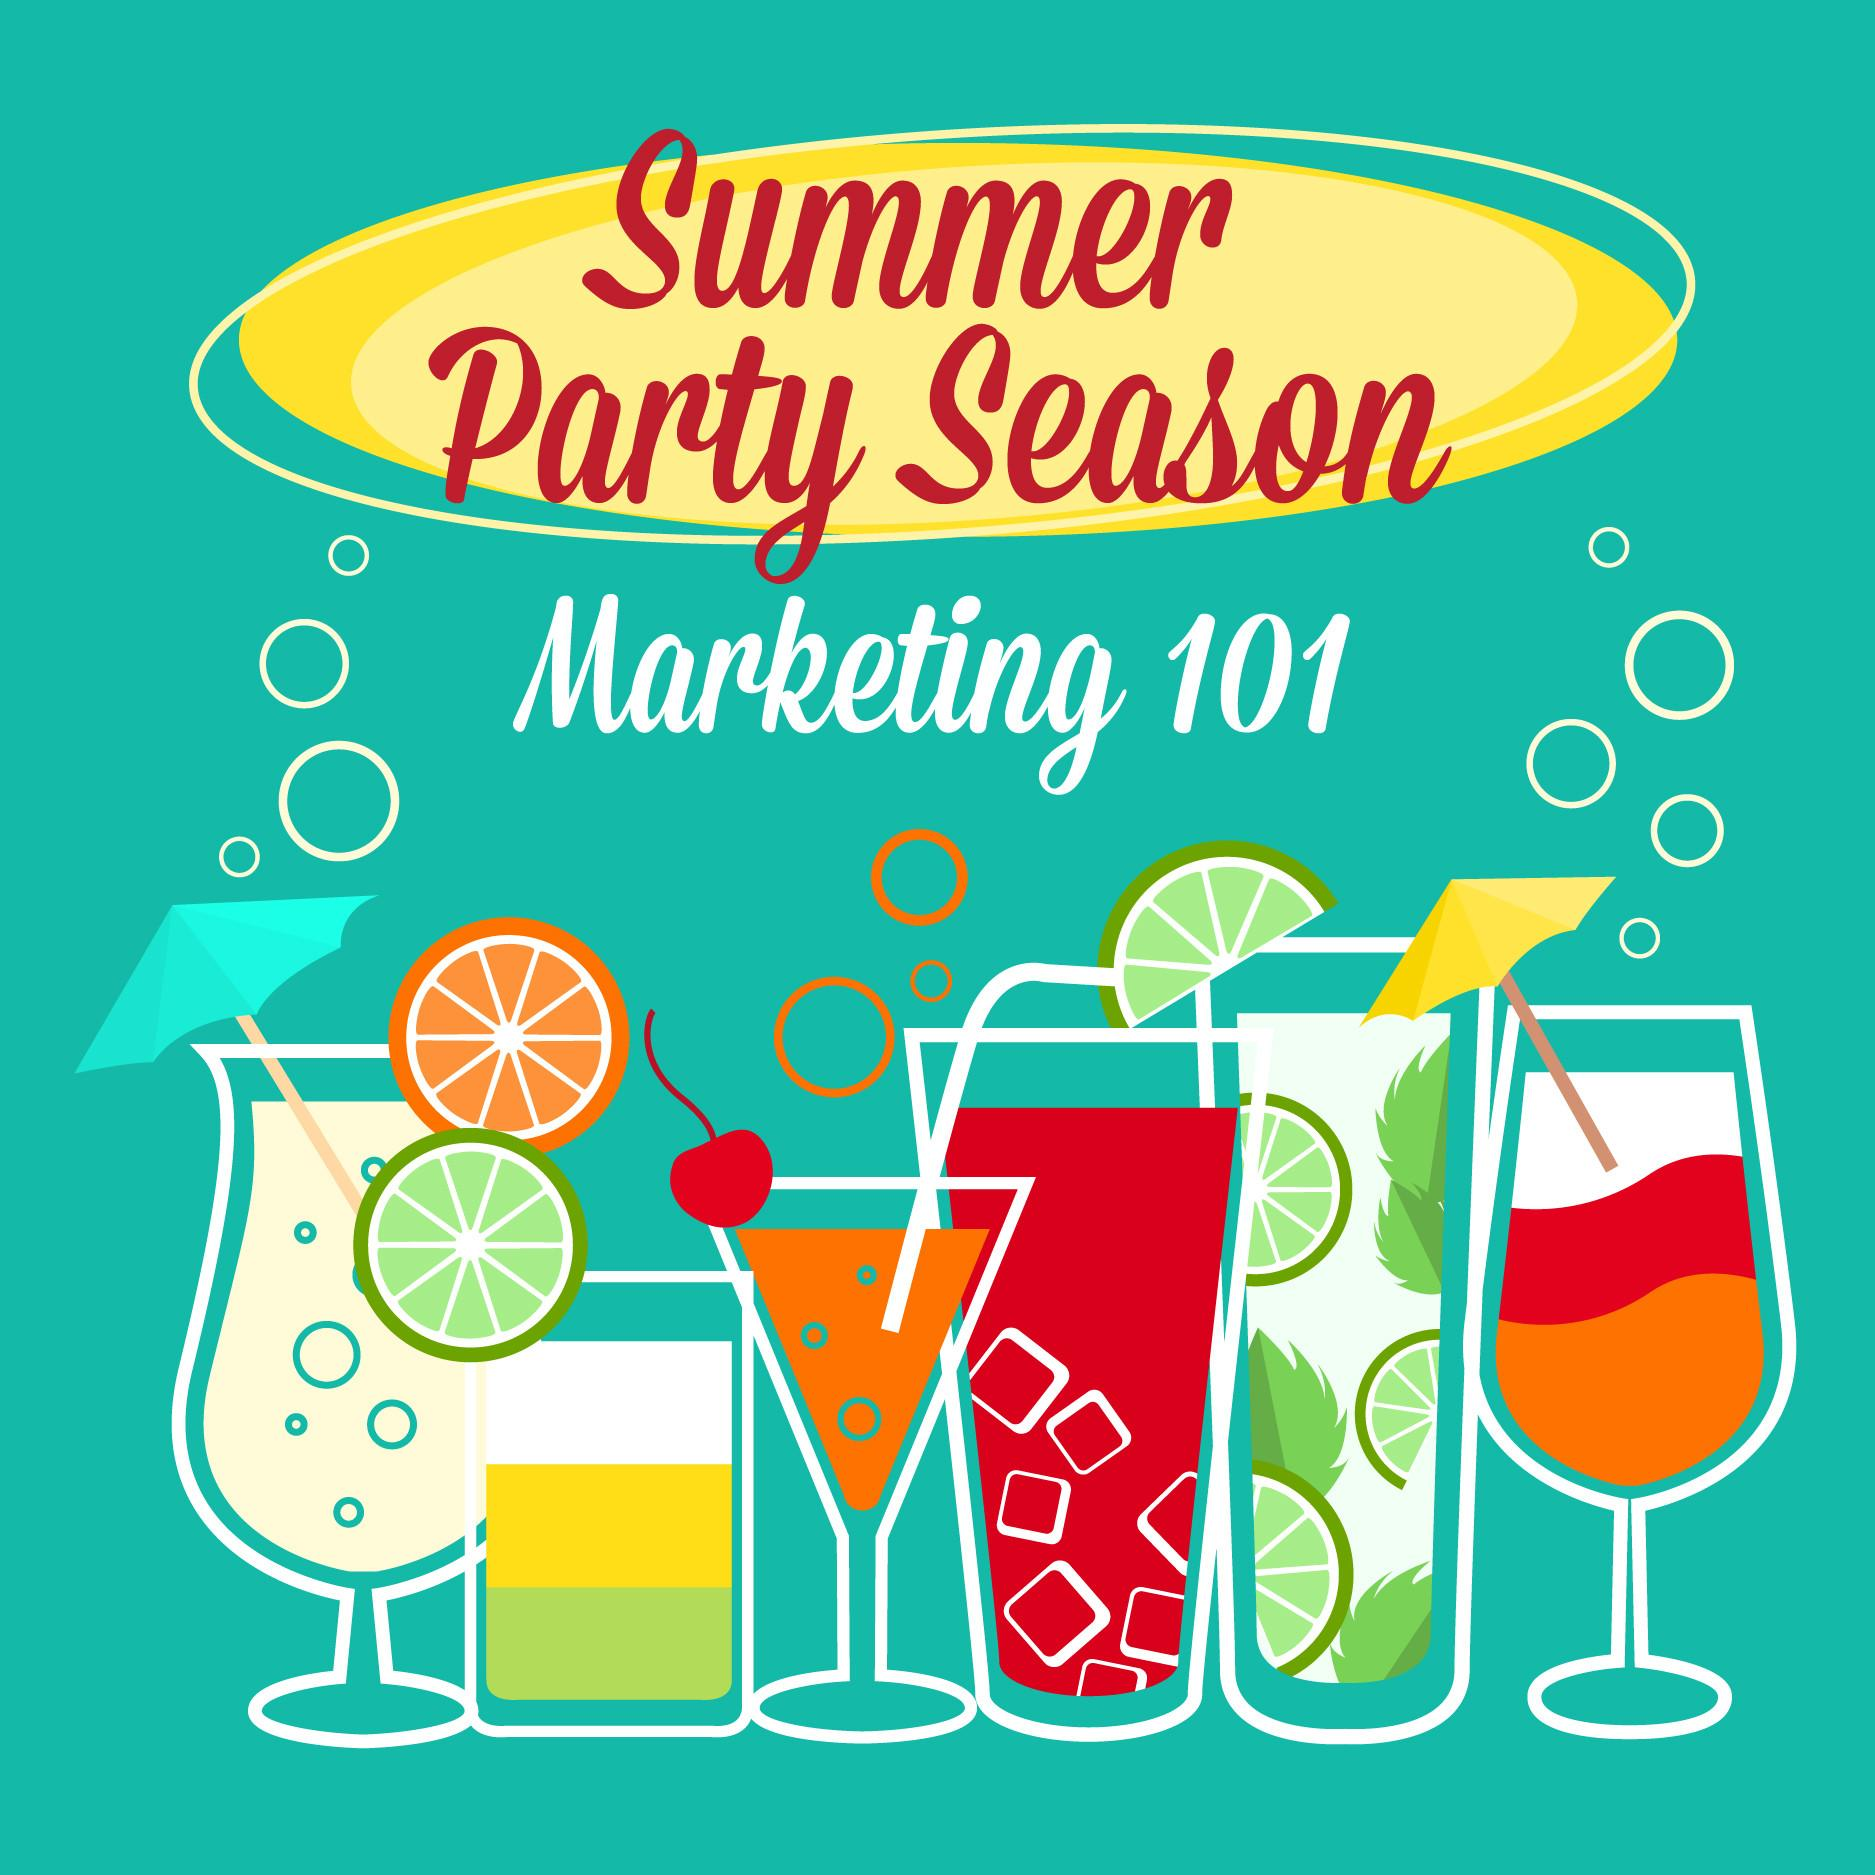 Summer Party Season Marketing 101 Dna